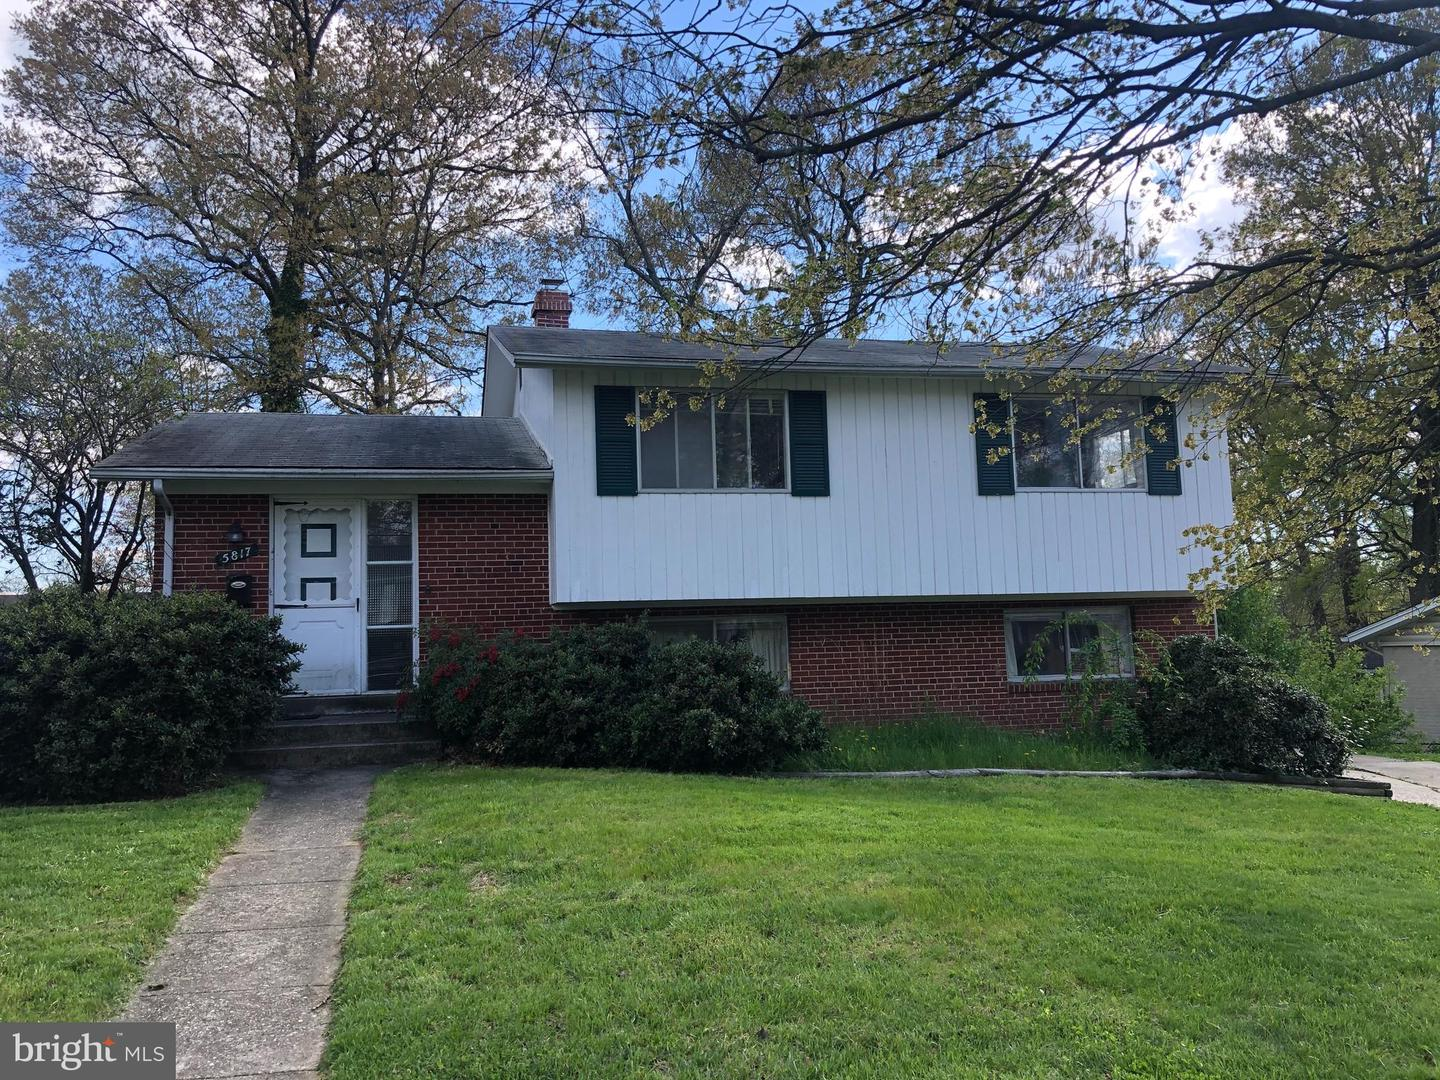 5817 BRYN MAWR RD, College Park, Maryland 20740, 5 Bedrooms Bedrooms, ,3 BathroomsBathrooms,Single Family,For Sale,5817 BRYN MAWR RD,MDPG603434